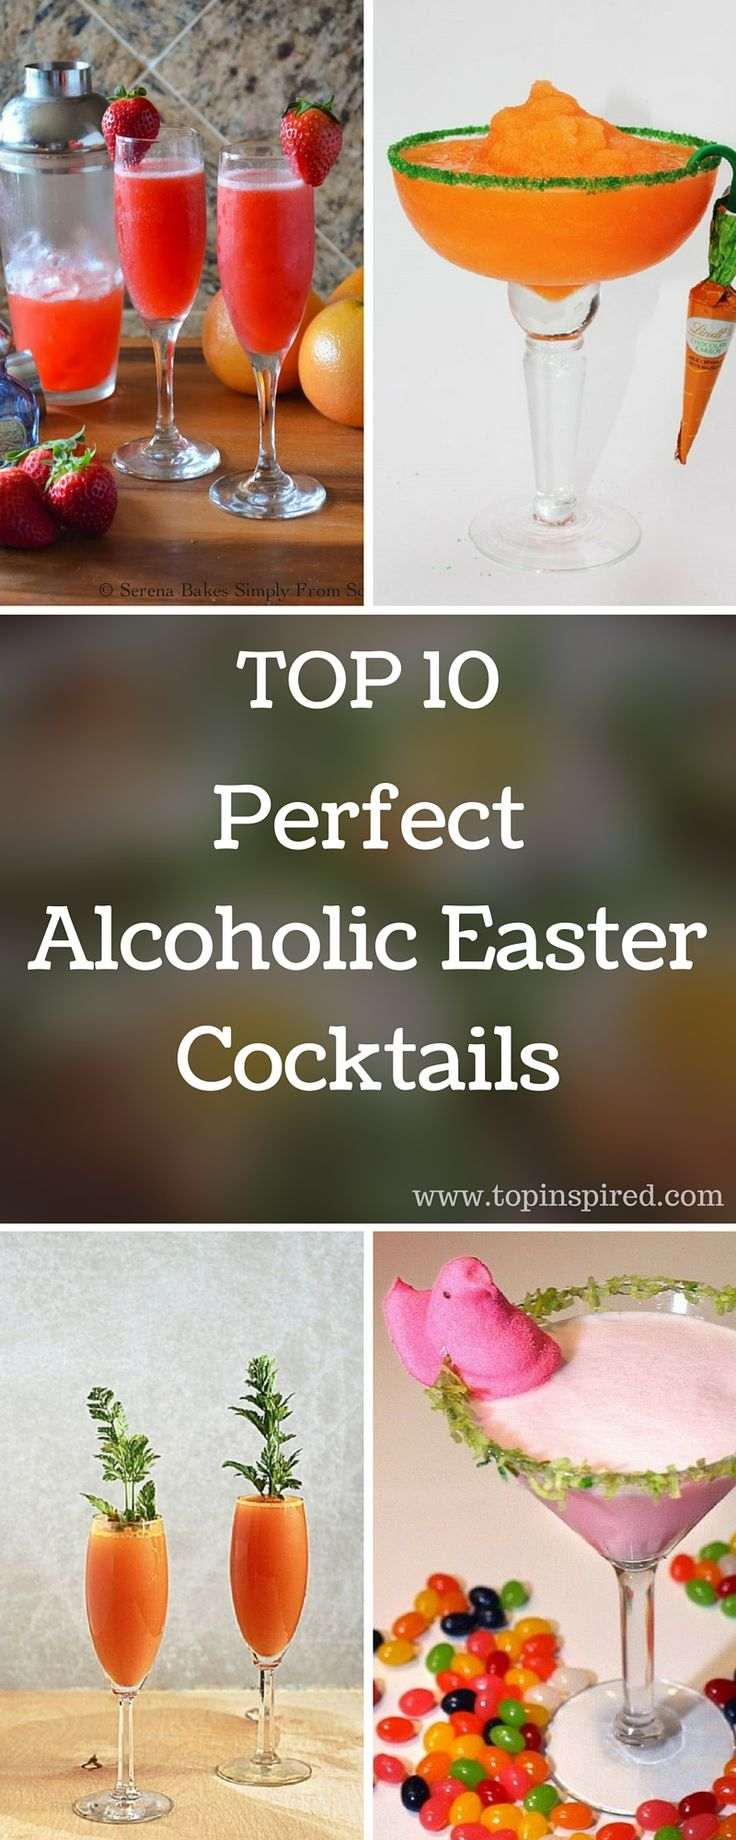 we've made an article where we've gathered Top 10 Perfect Easter Alcoholic Cocktails. Choose one or a few of these amazing recipes and satisfy your family members in the best possible way. Happy Easter everyone! #Easter #Cocktails